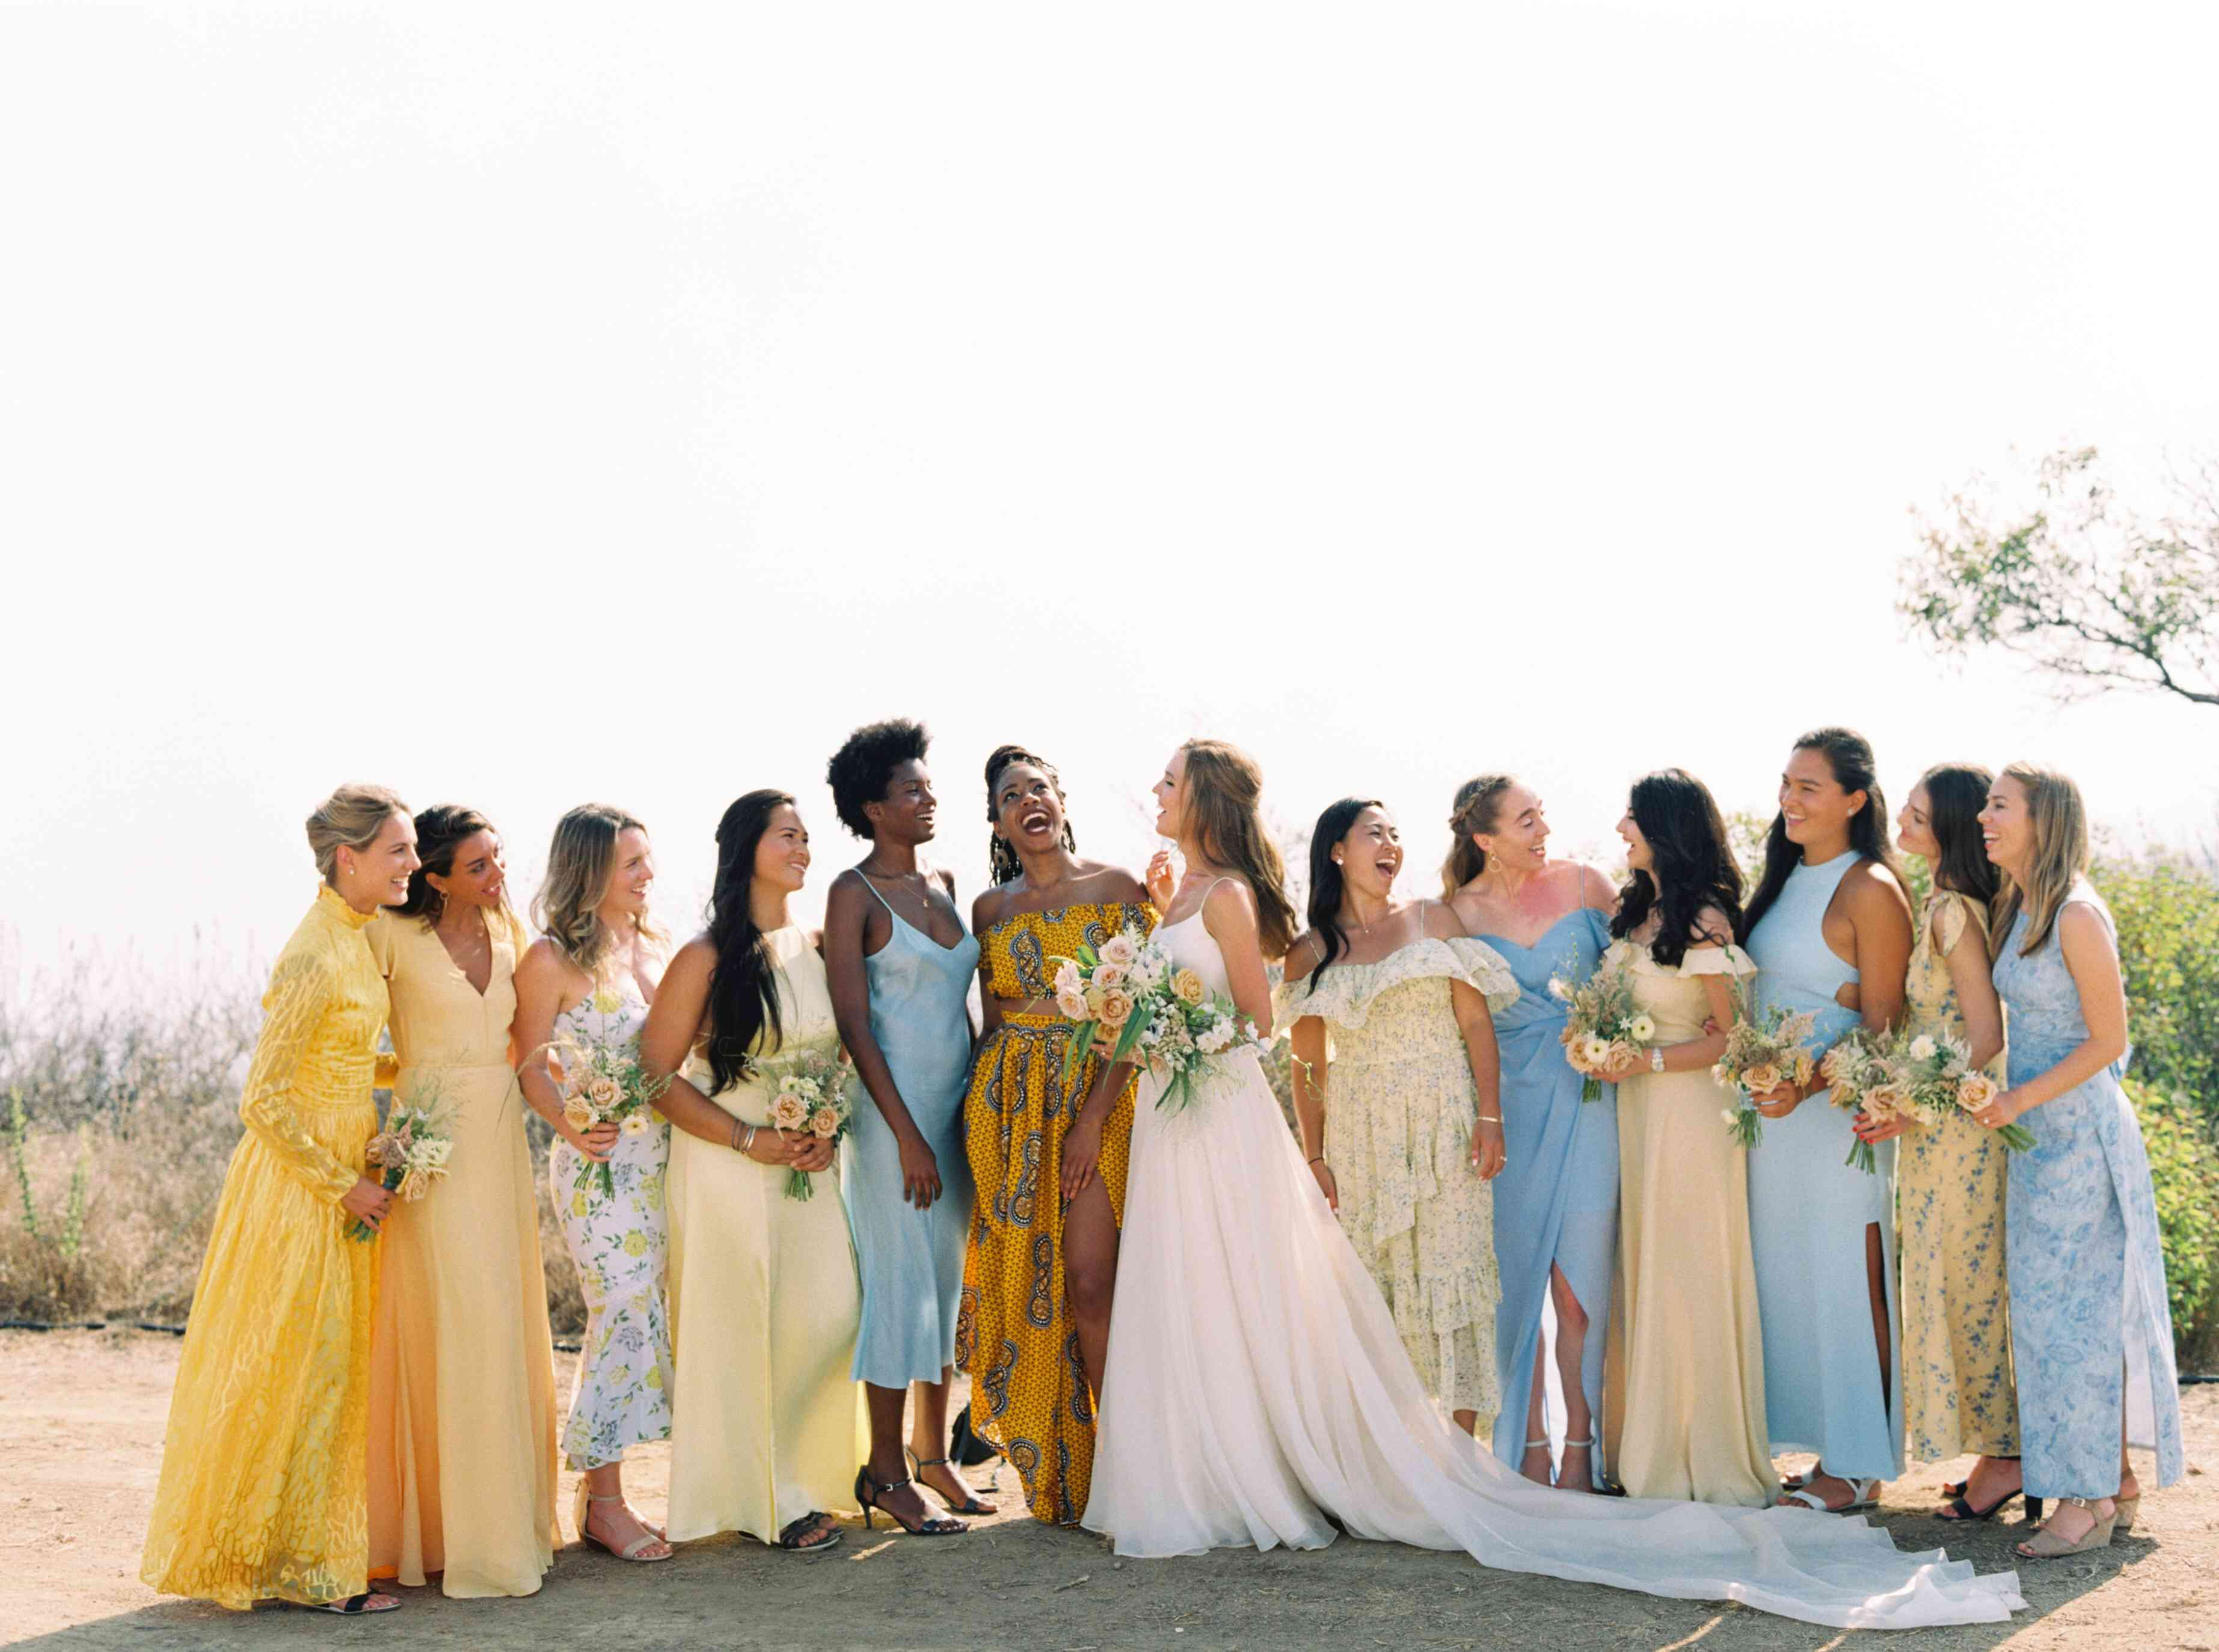 A group of bridesmaids in mismatched dresses standing outdoors with the bride in the middle